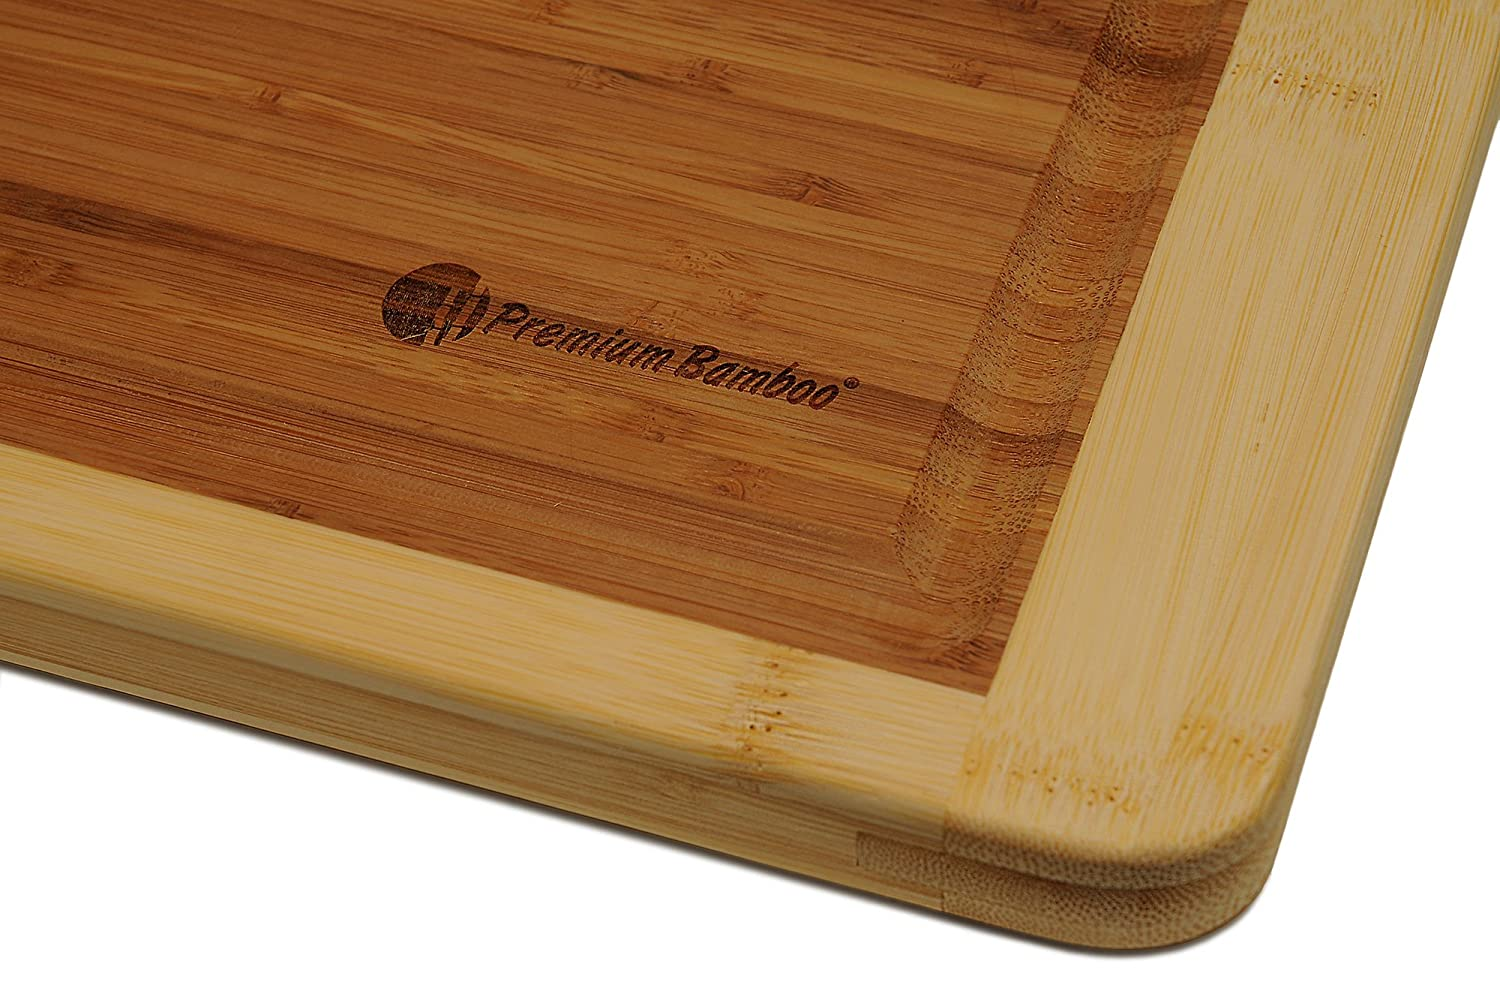 Premium Lifestyle Products COMIN18JU053076 Curved Large and Strong Chopping Board Measures 18x12 inches Thick Bamboo Cutting Board with Deep Edge Juice Drip Groove Made from Natural and Eco-friendly Bamboo Wood